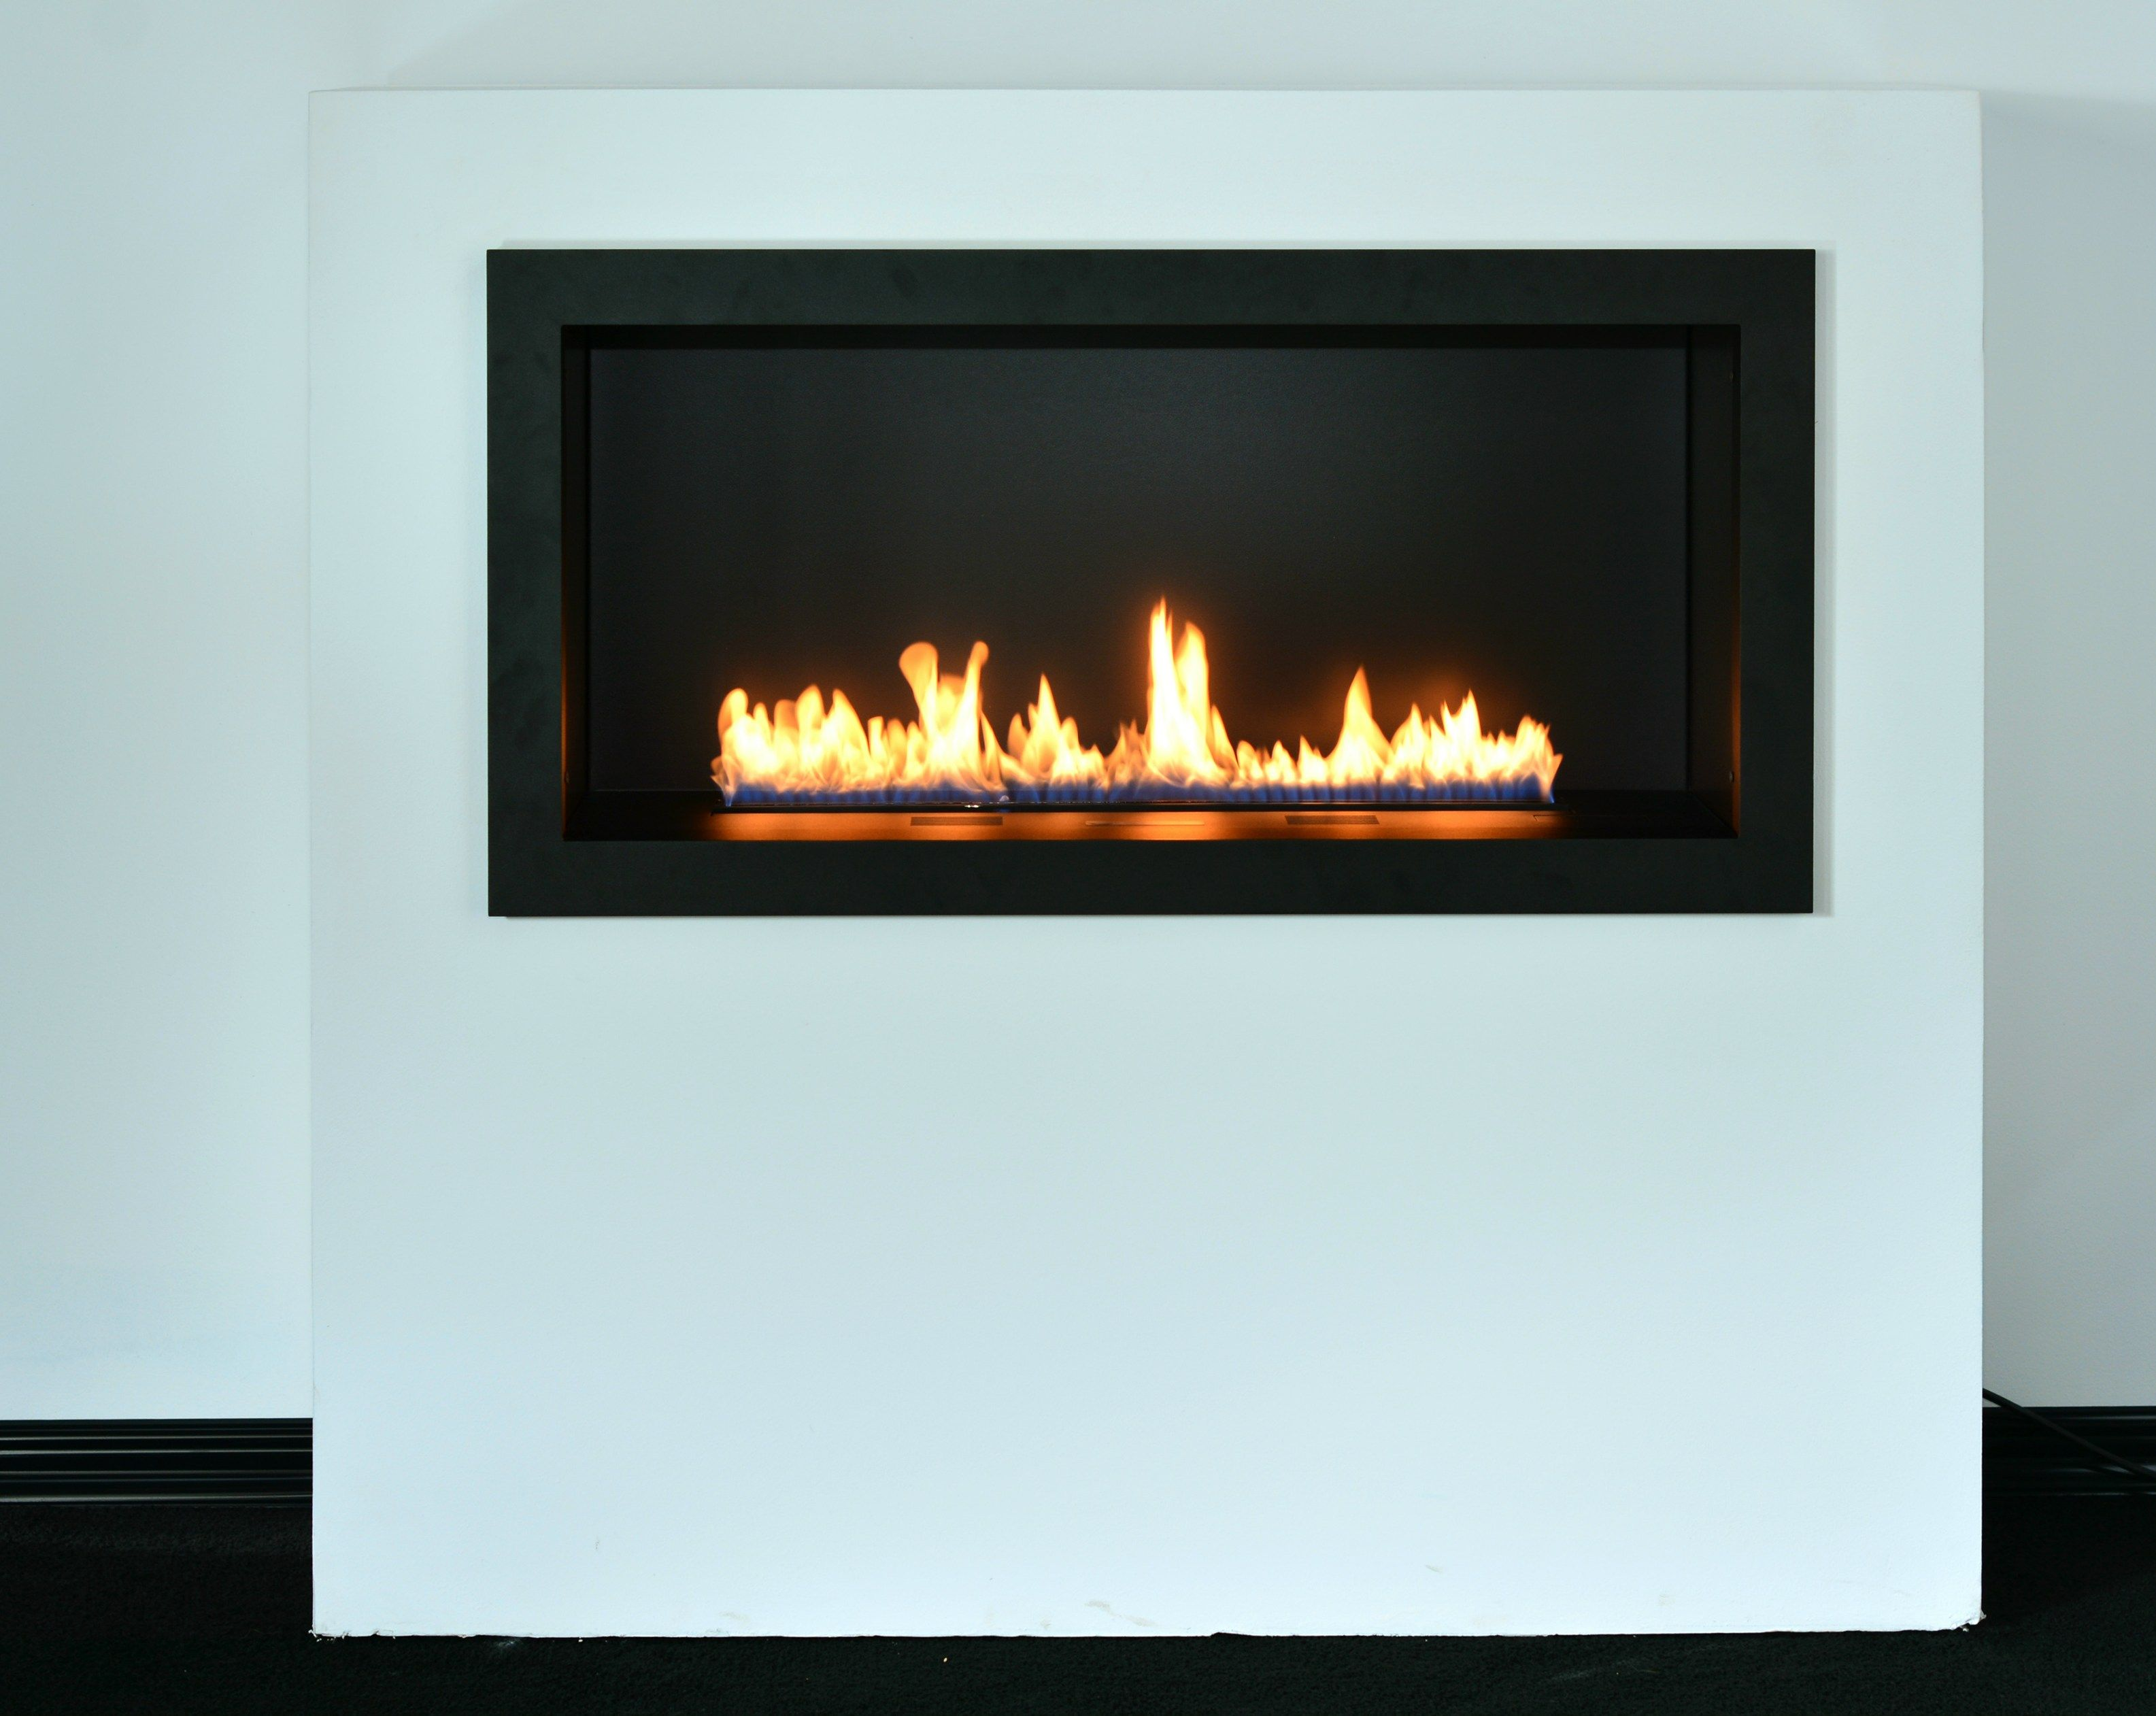 Chimenea empotrada de bioetanol de pared primefire in casing by planika chimineas - Chimenea bioetanol pared ...